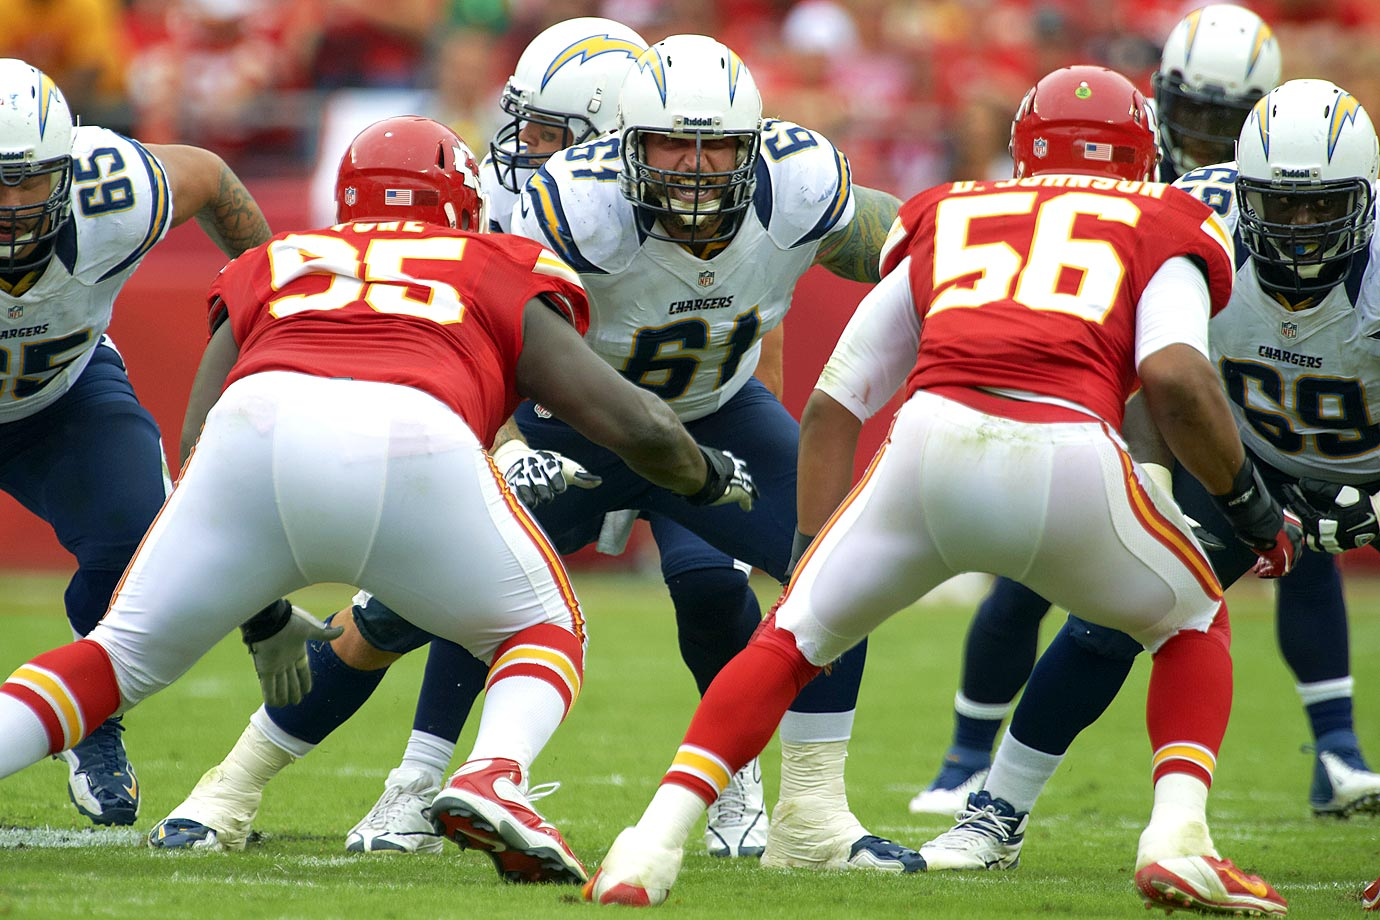 Longtime Chargers center Nick Hardwick retired Feb. 3 after 11 NFL seasons, all spent in San Diego. Hardwick started all 136 games in which he appeared, including every Chargers contest between 2010 and 2013. He also appeared in 10 playoff games across six postseason appearances, snapping the ball to Pro Bowl quarterbacks Drew Brees and Philip Rivers. He was a five-time Chargers captain and was selected to the Pro Bowl in 2006.